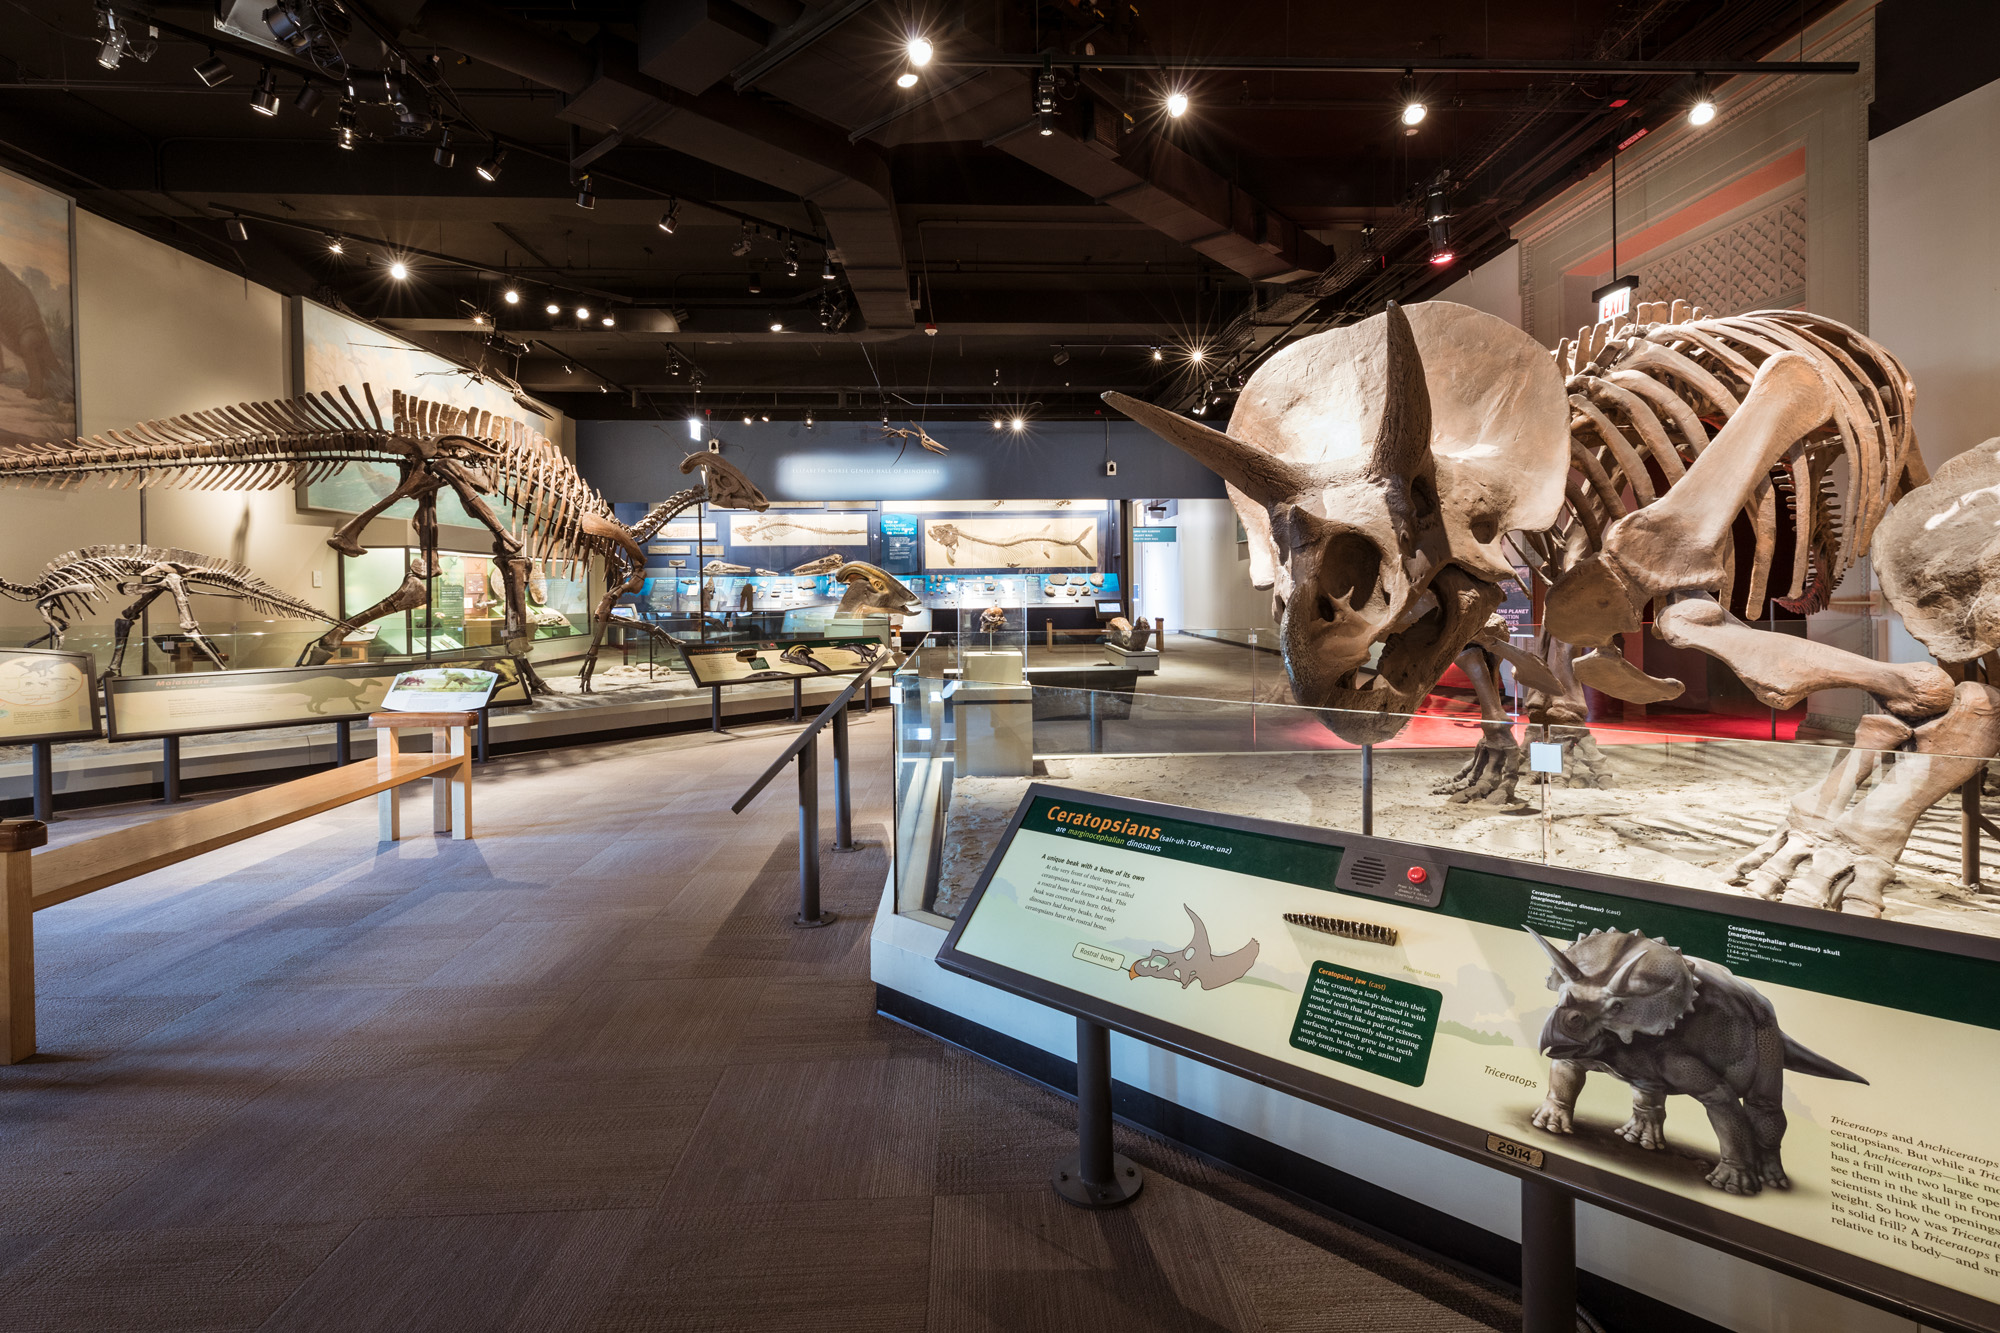 View of the Dinosaur Hall in the Evolving Planet exhibition, with a Triceratops fossil on the right, a Parasaurolophus to the left, and various fossils in the background.